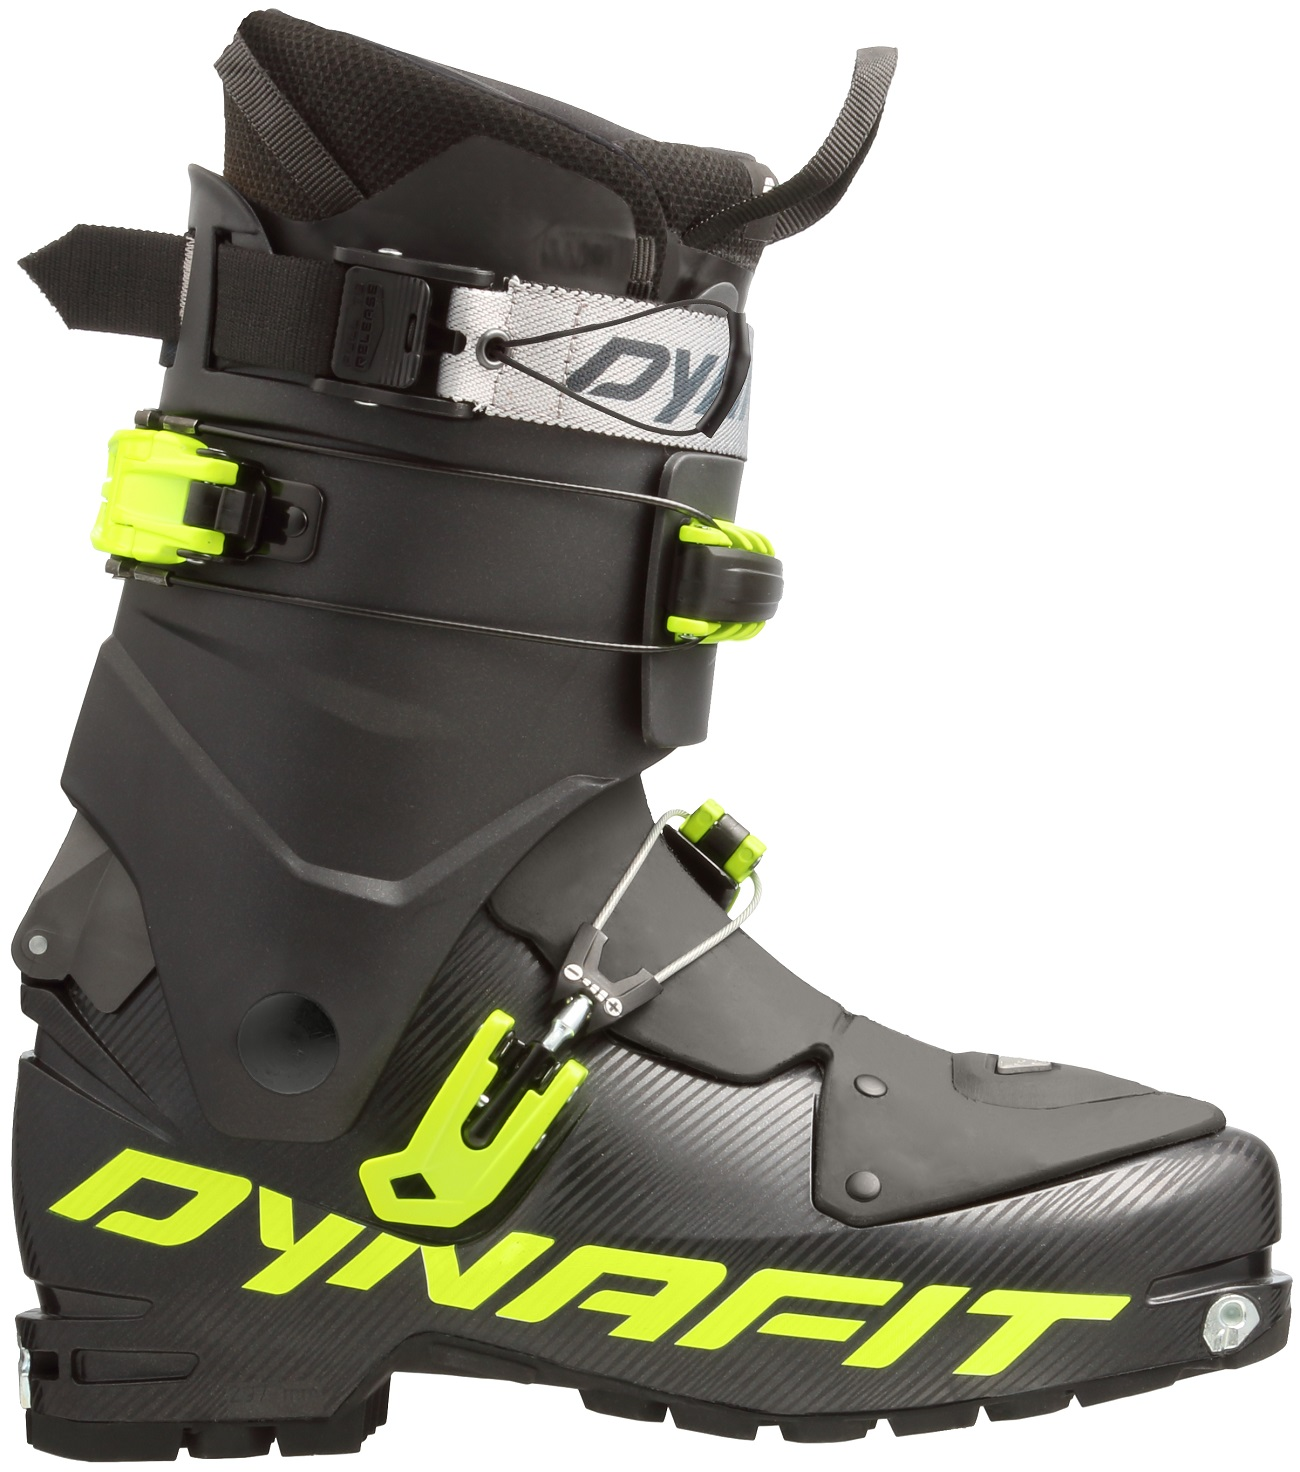 Alpine Bindings That Fit Touring Boots